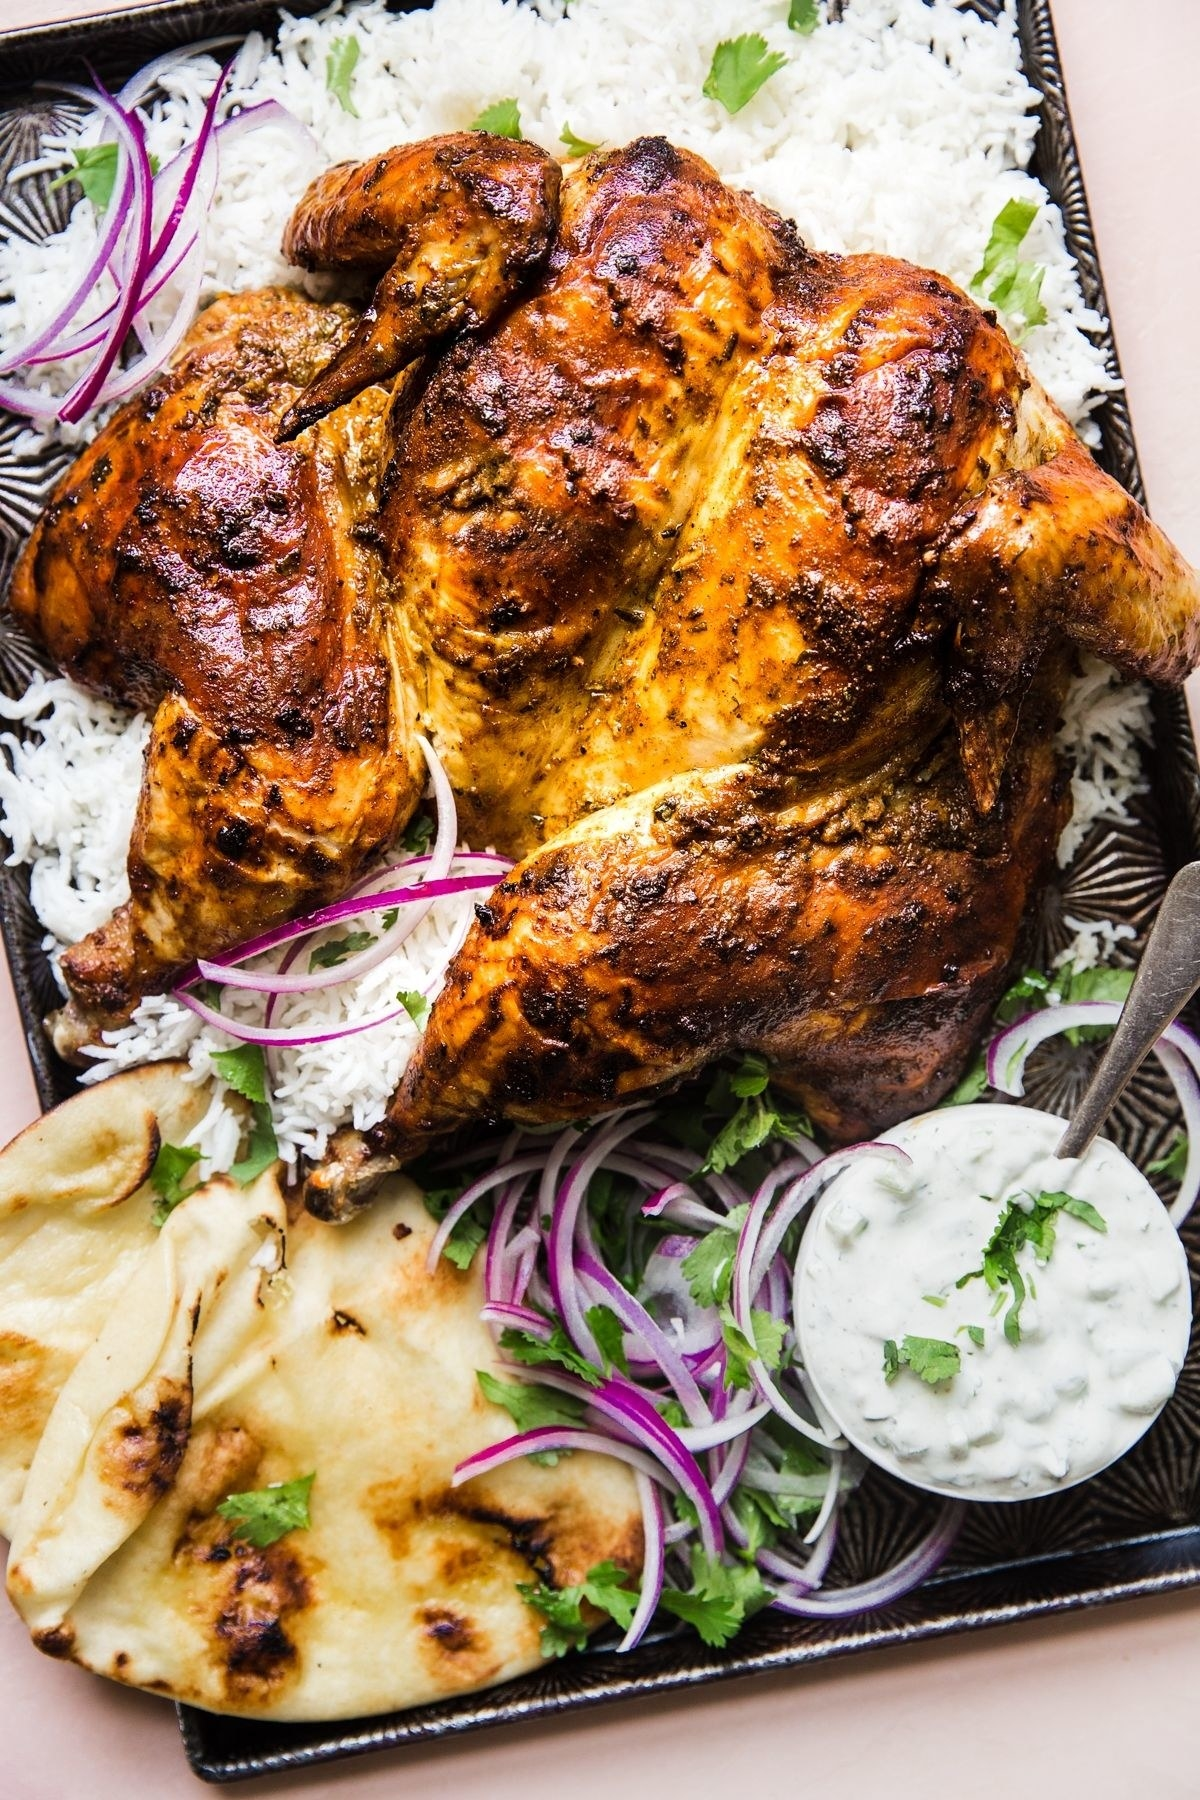 Roasted tandoori chicken with naan, sliced red onion, and tzatziki.